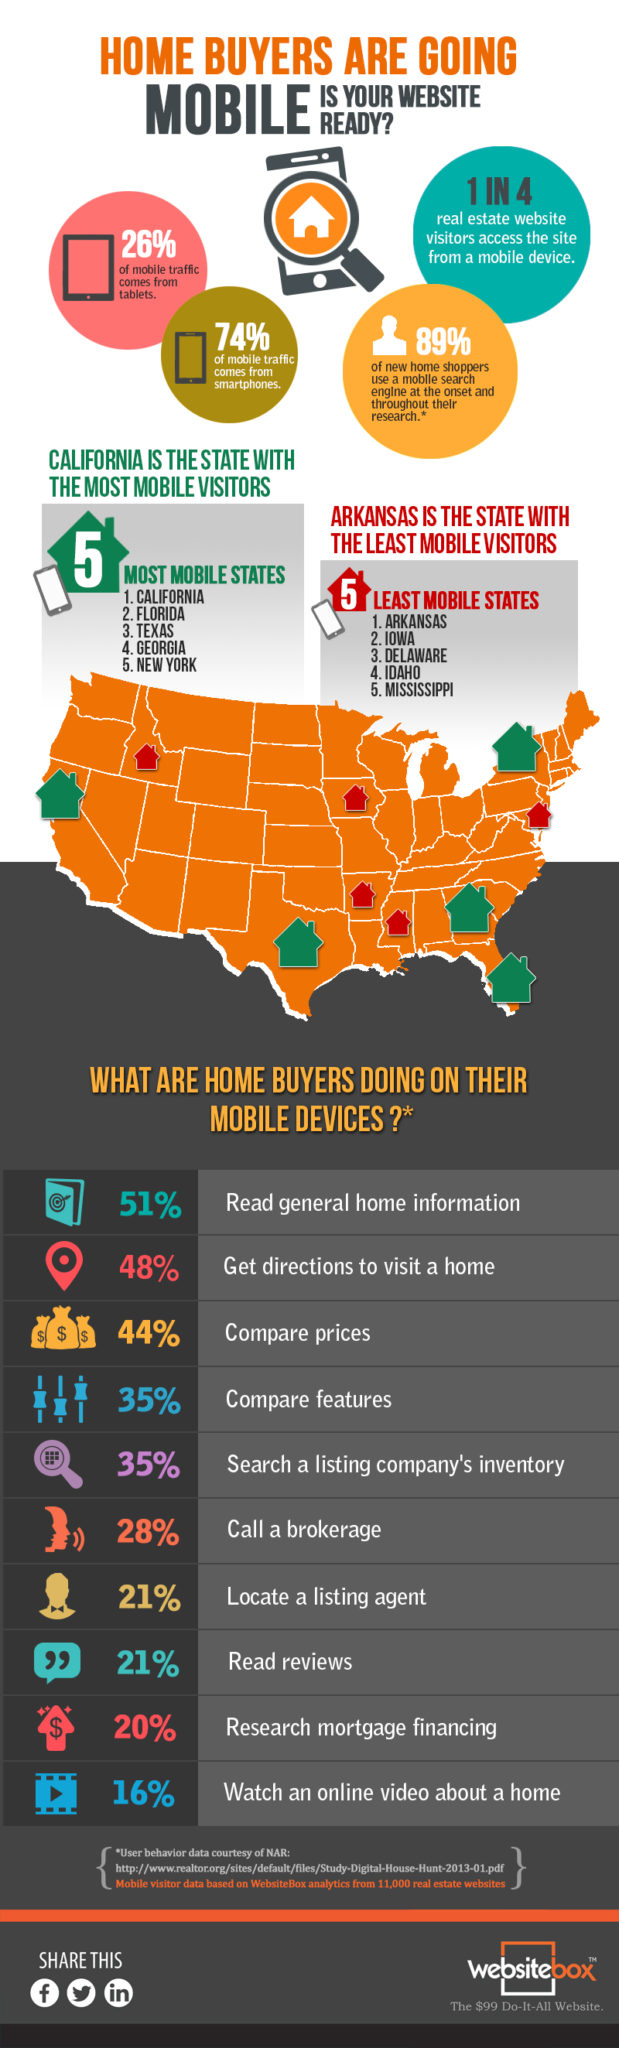 Home_Buyers_Going_Mobile